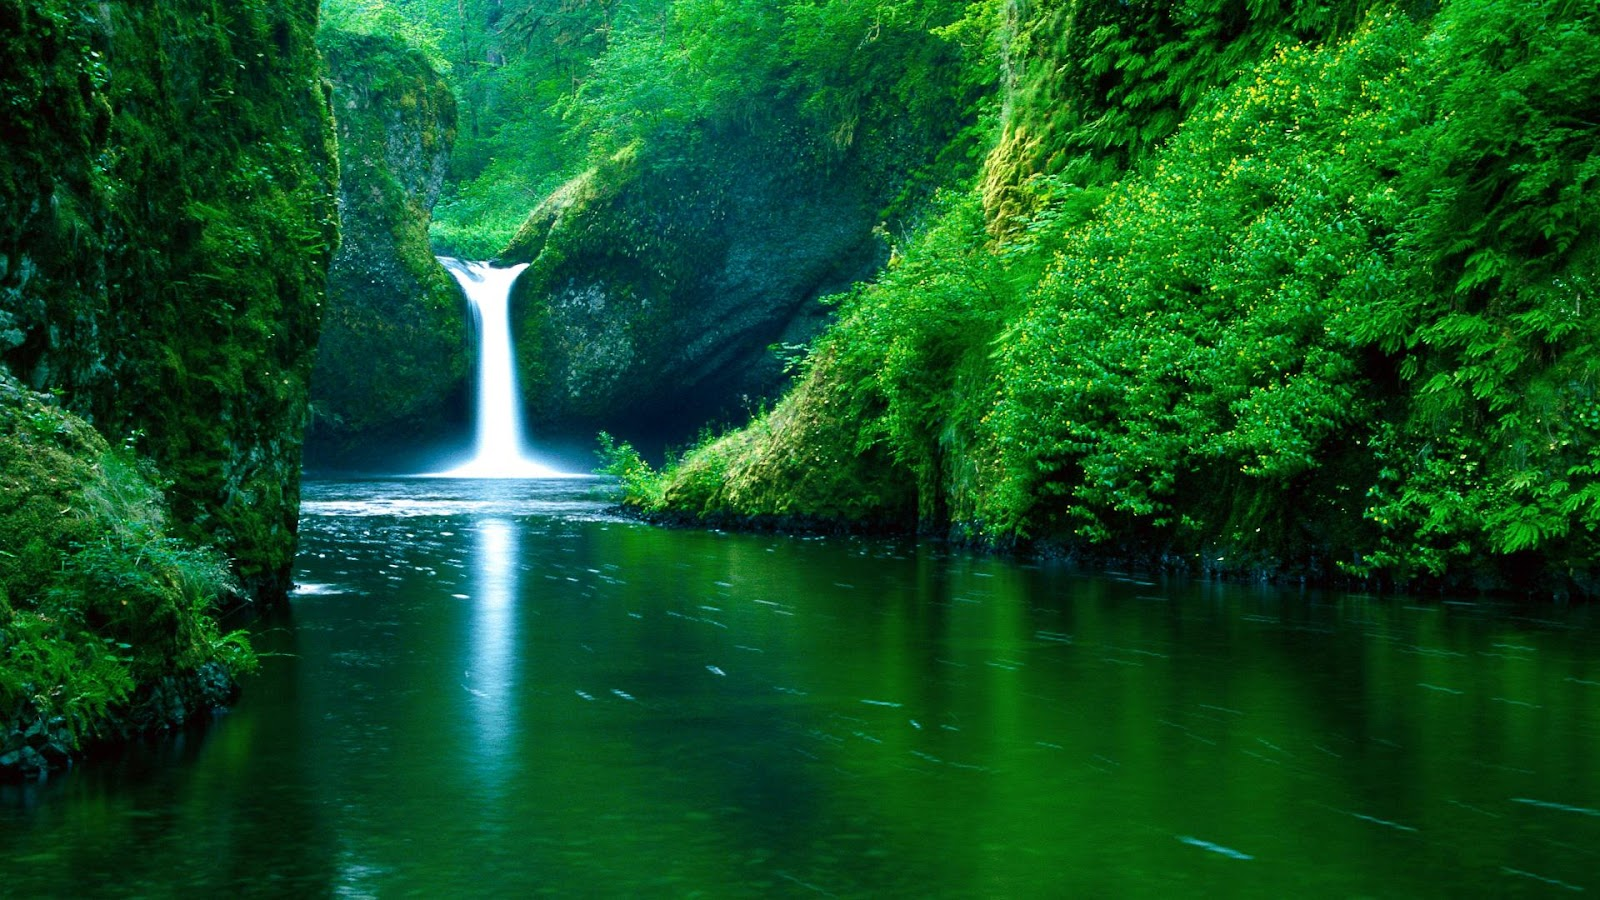 Green Forest Full HD Waterfall Nature Wallpapers for Laptop Desktop